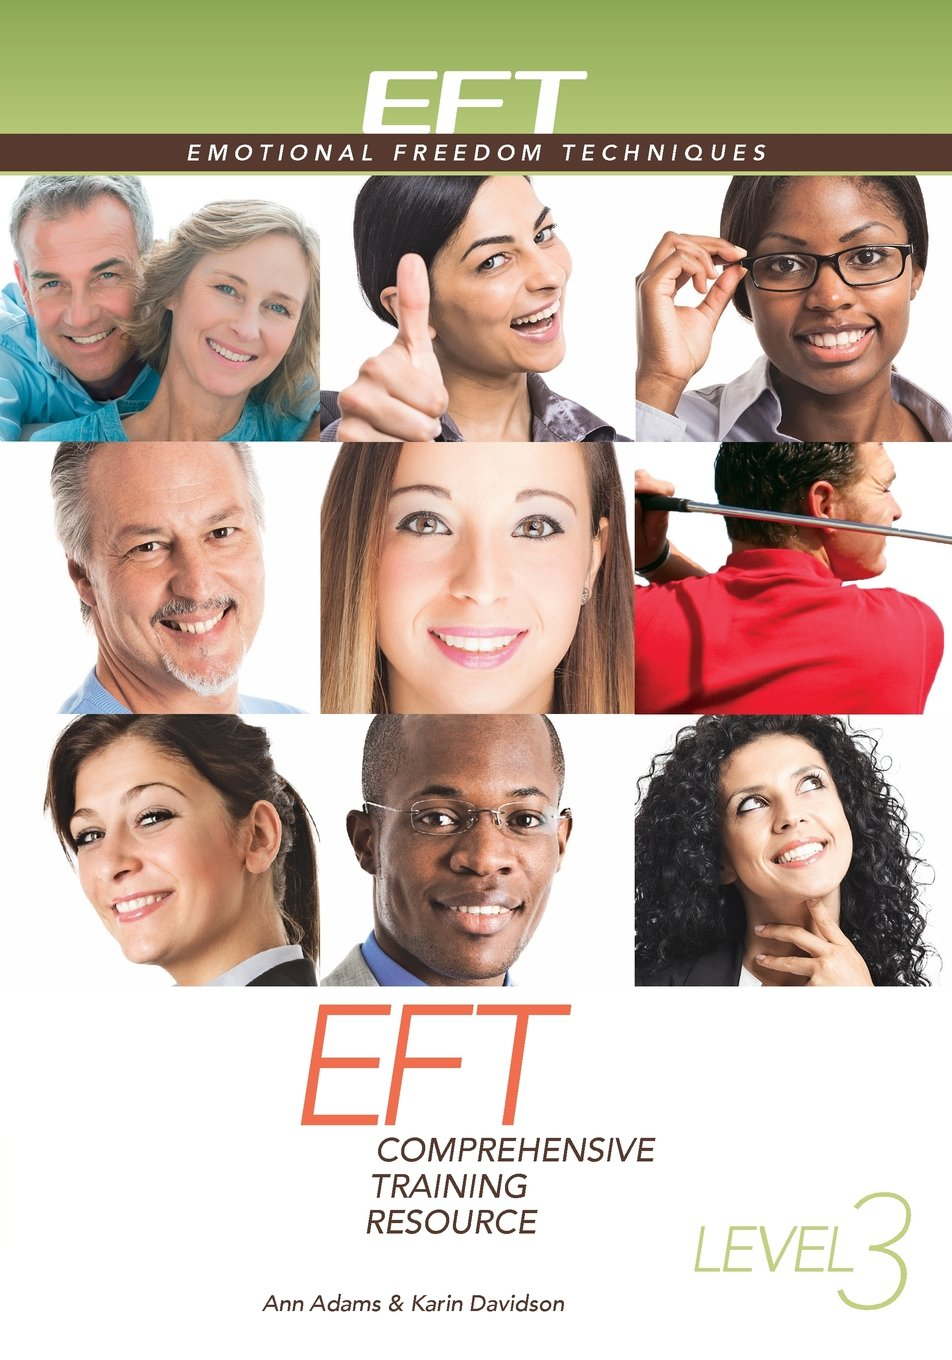 EFT comprehensive training resource level 3